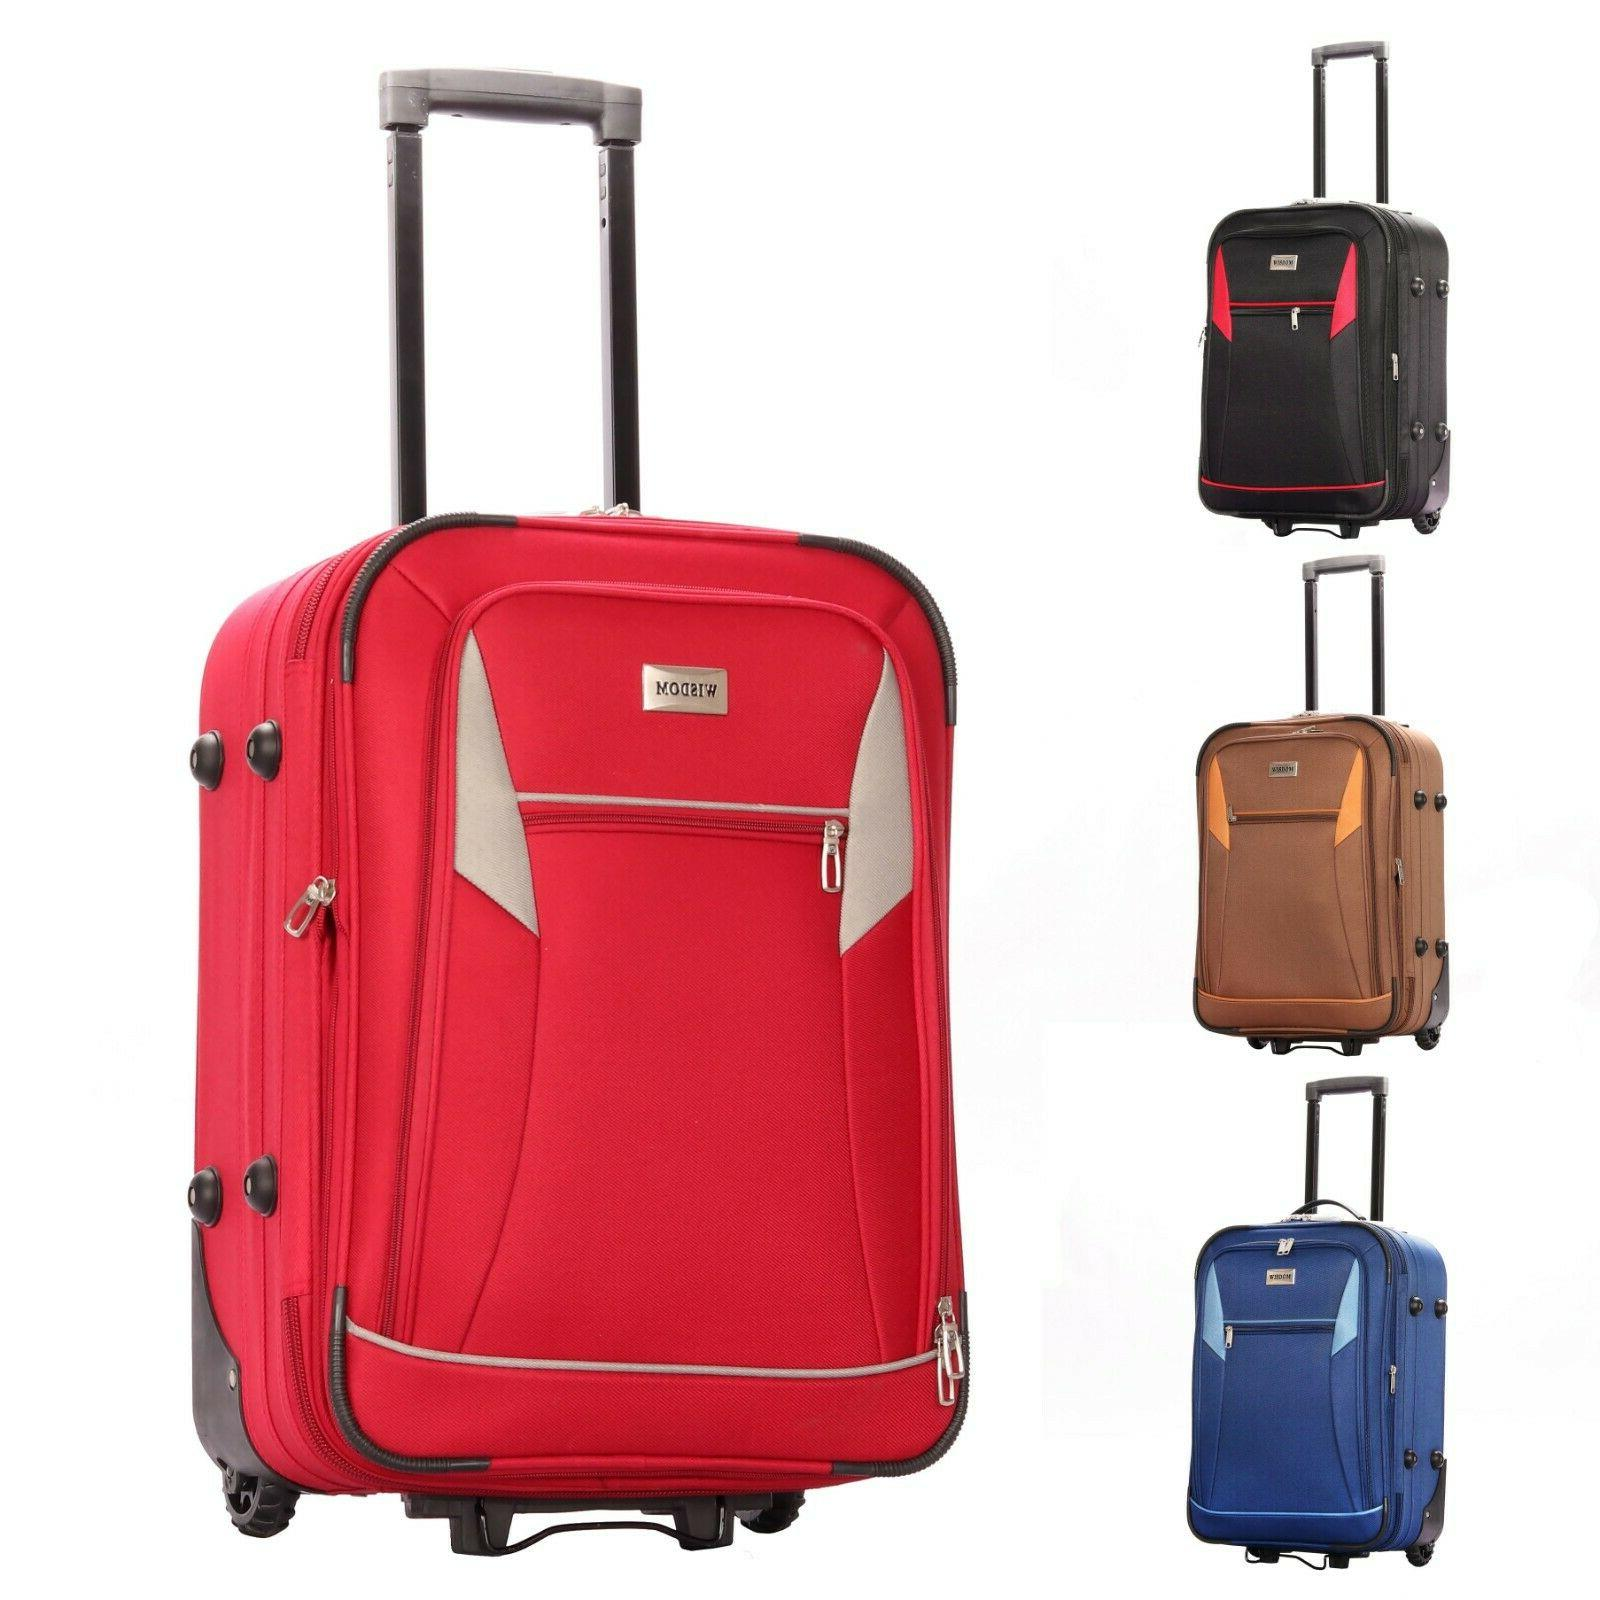 22 spinner carry on luggage hard lightweight